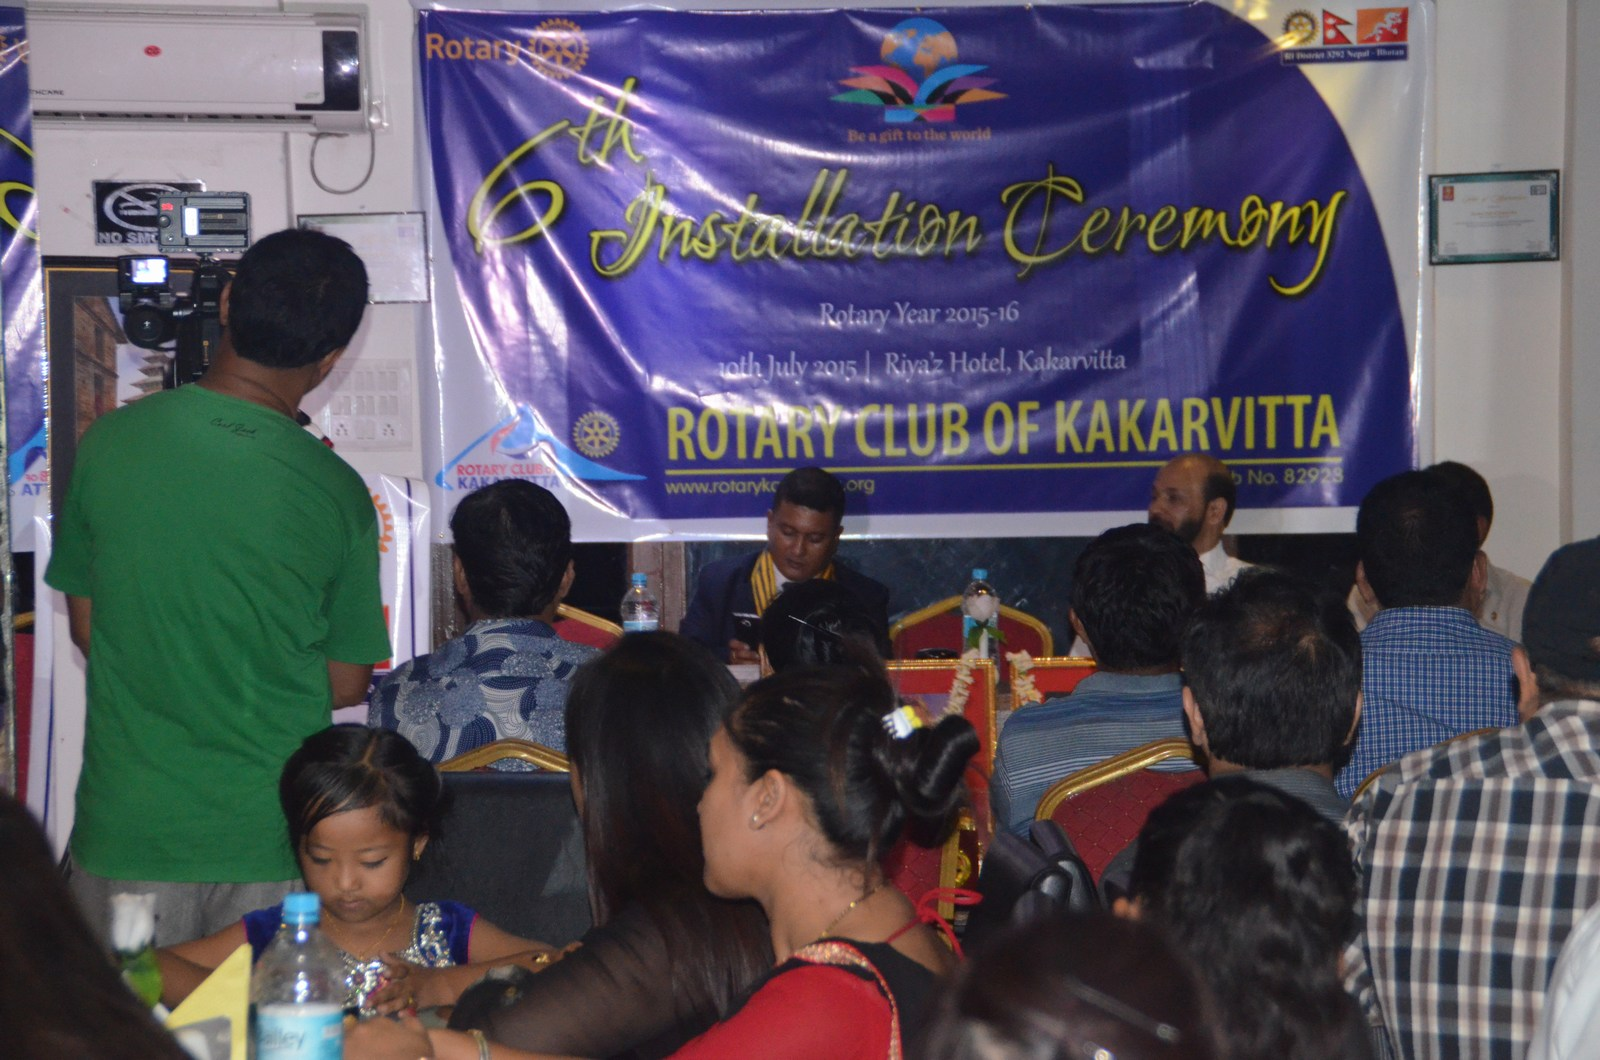 6th Installation Ceremony 2015 16 Rotary Club Of Kakarvitta 38